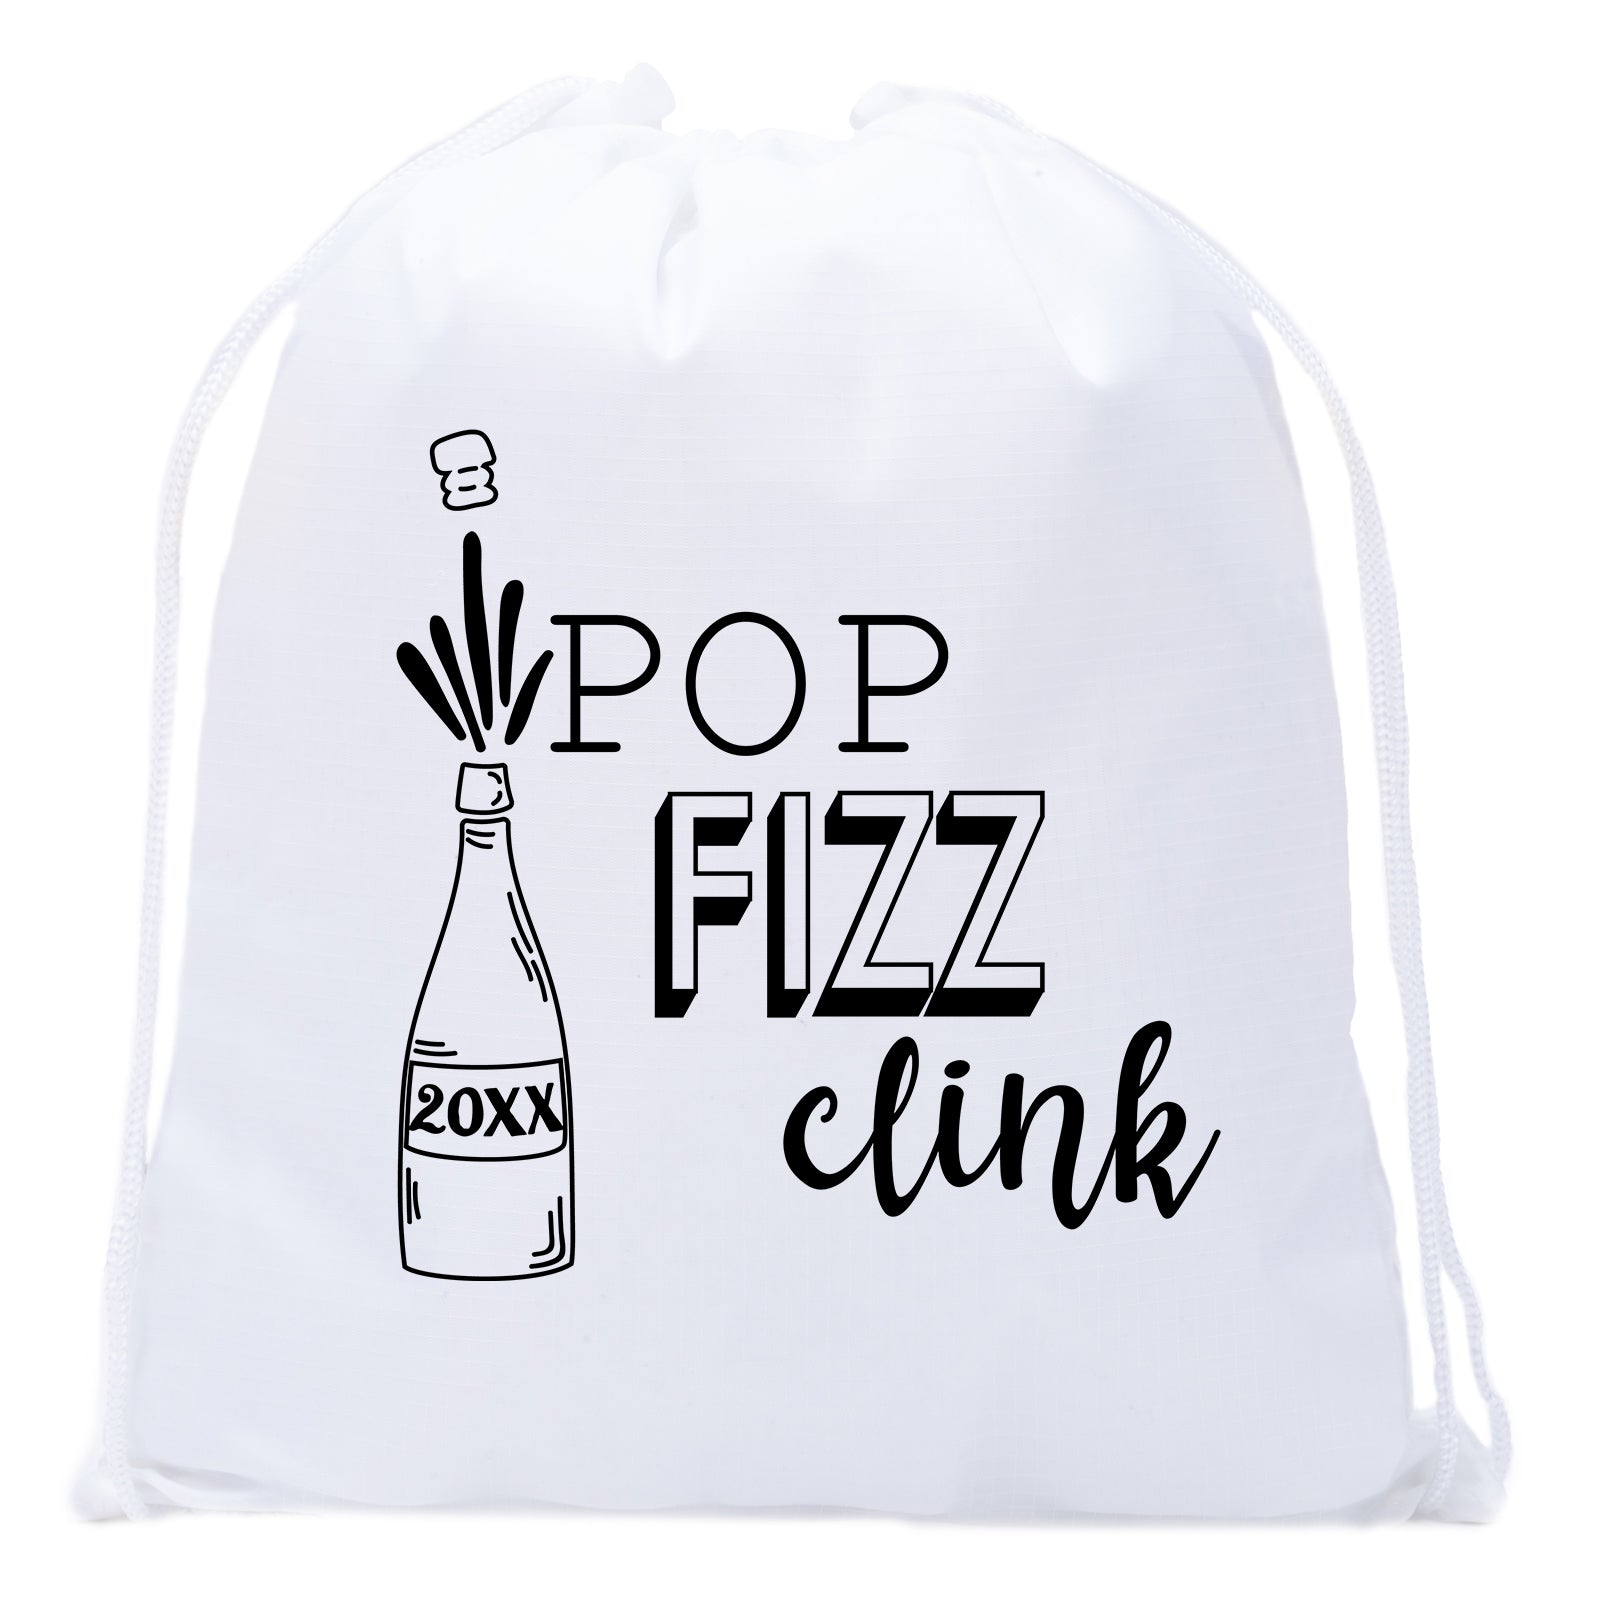 Accessory - New Year's Eve Party Goody Bags, Table Top New Years Decorations, 2019 Gift Bags - Pop Fizz Clink